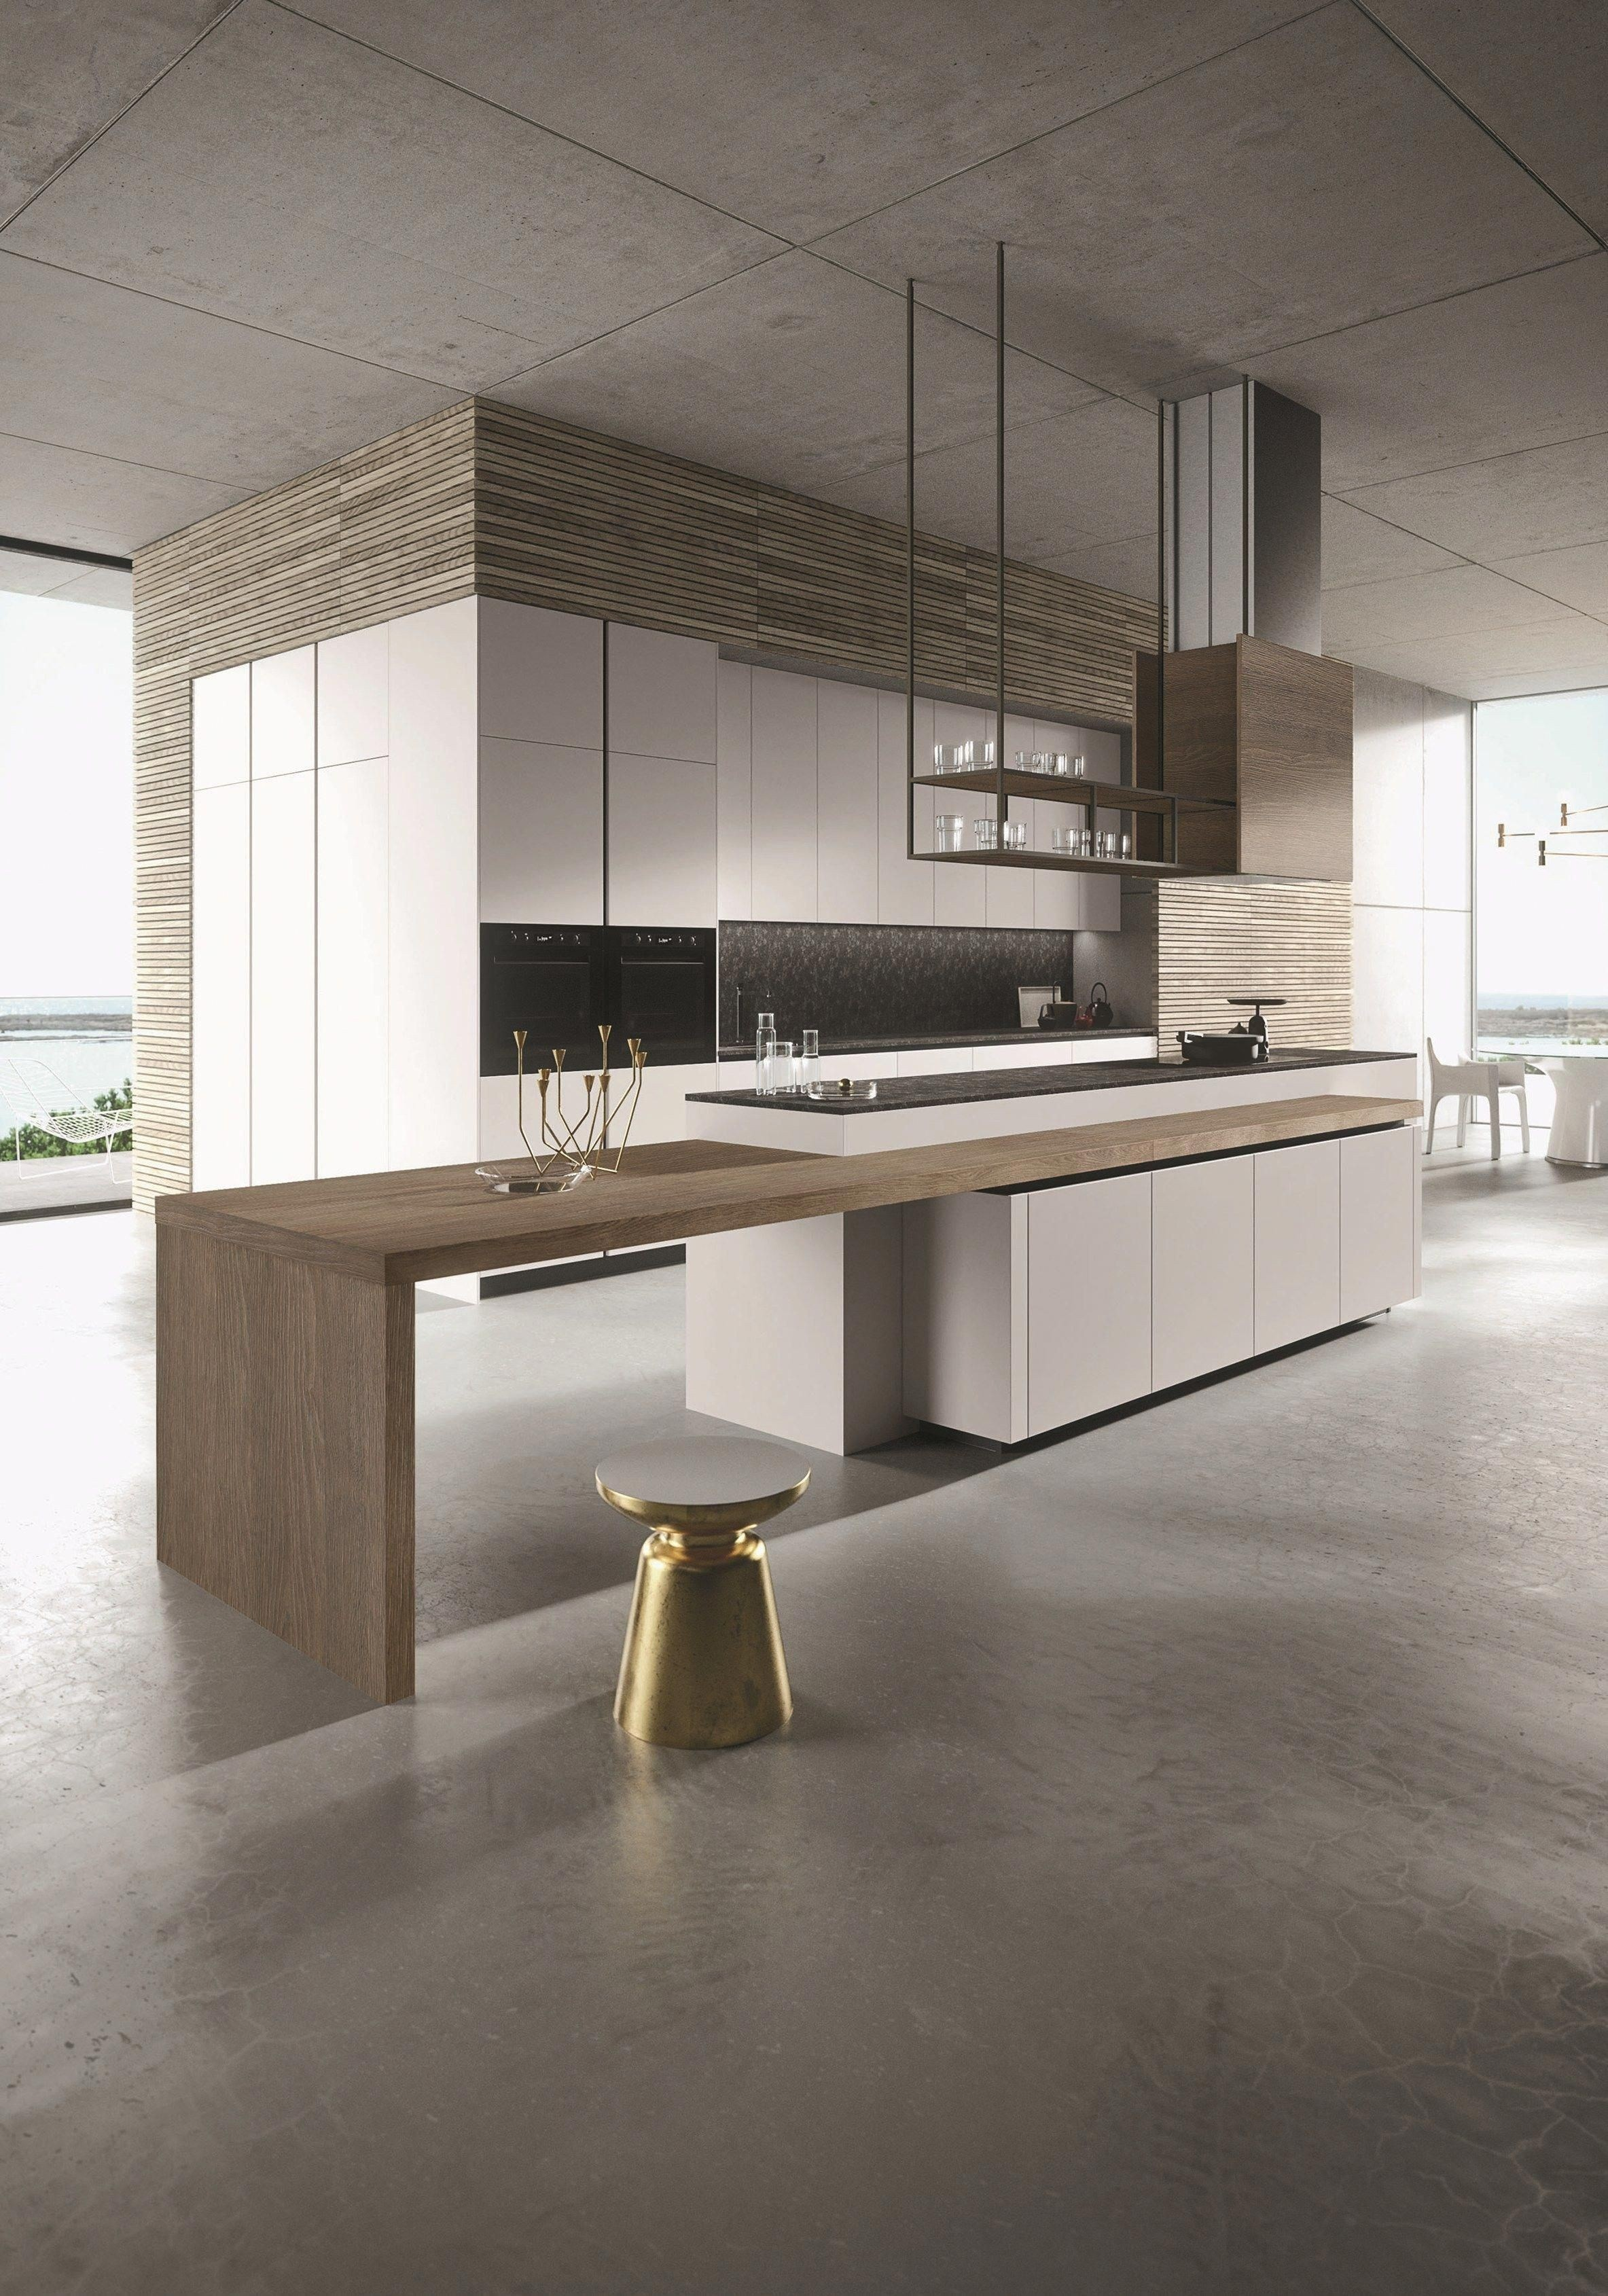 LOOK Cocina con isla Colecci³n SISTEMA by Snaidero dise±o Michele Marcon kitchendesign Modern Kitchen